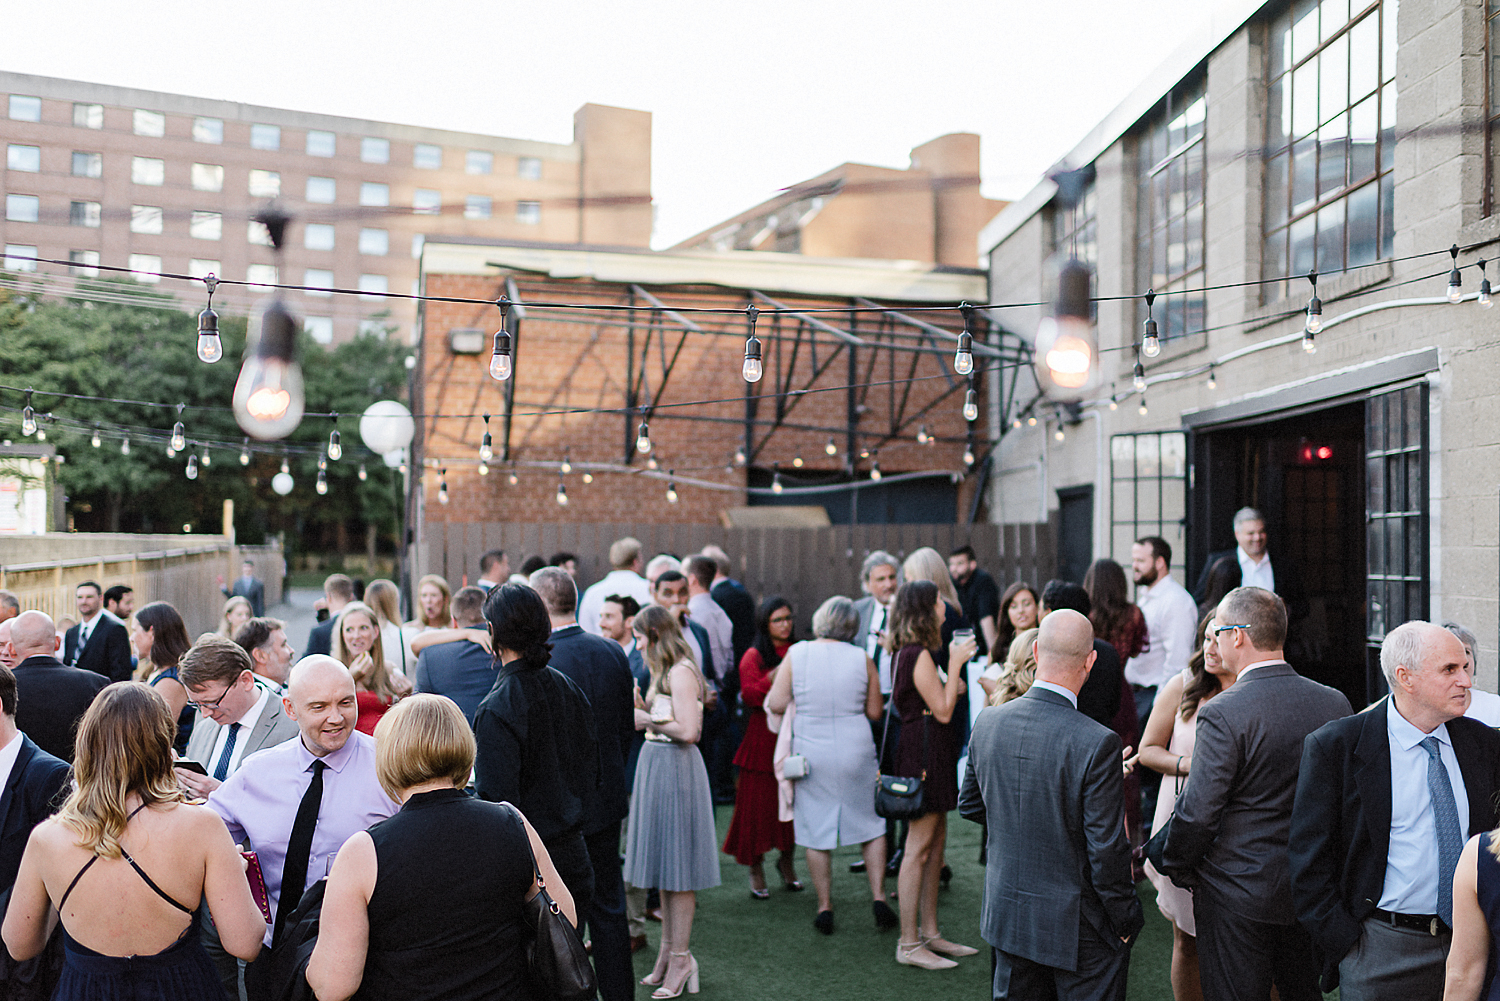 Best-Wedding-photographers-Toronto-NAtural-Candid-wedding-photography-Airship37-Guests-Mingling-on-patio-blue-hour.jpg